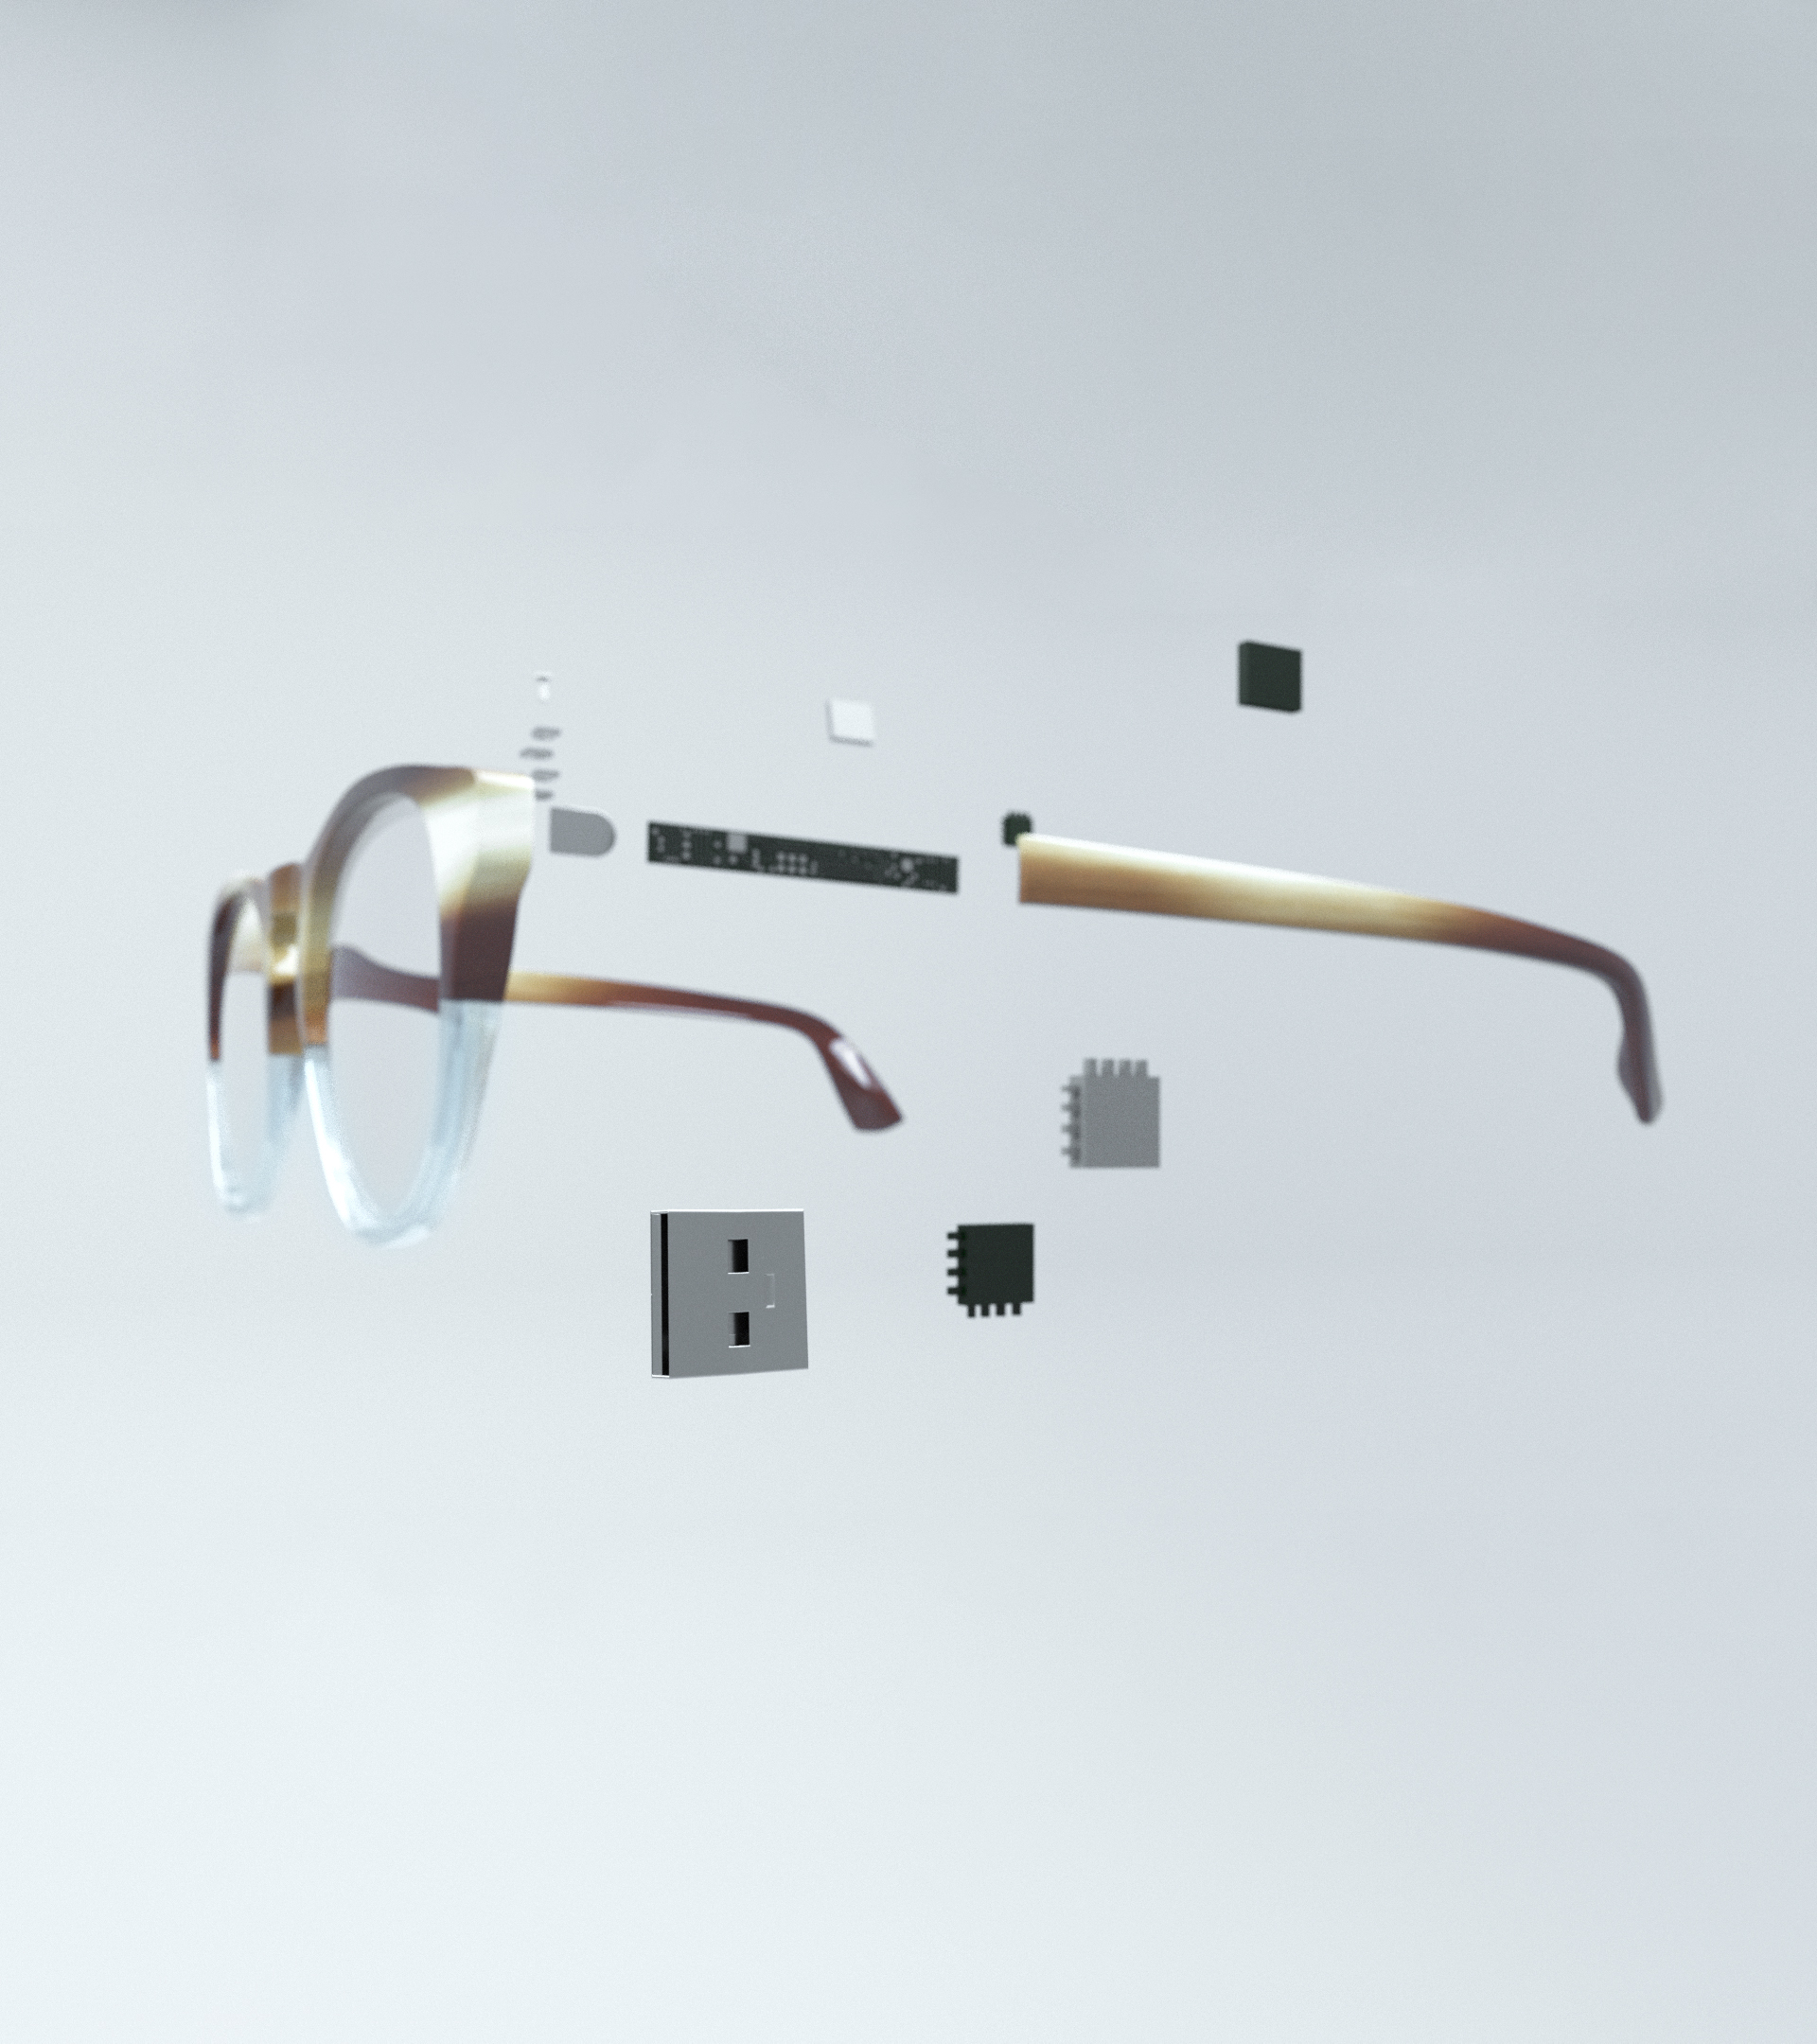 the final product design - Phantaglass was designed to fit seamlessly into everyday life. The glasses are meant to appear similar to everyday prescription frames. The EEG technology is embedded within the arm of the glasses keeping the technology discreet. The arms are also equipped with electrode nodes to send the mind's activity to the processing features of the device. These nodes, on the inner portion the arms, rest on the temples of the user.